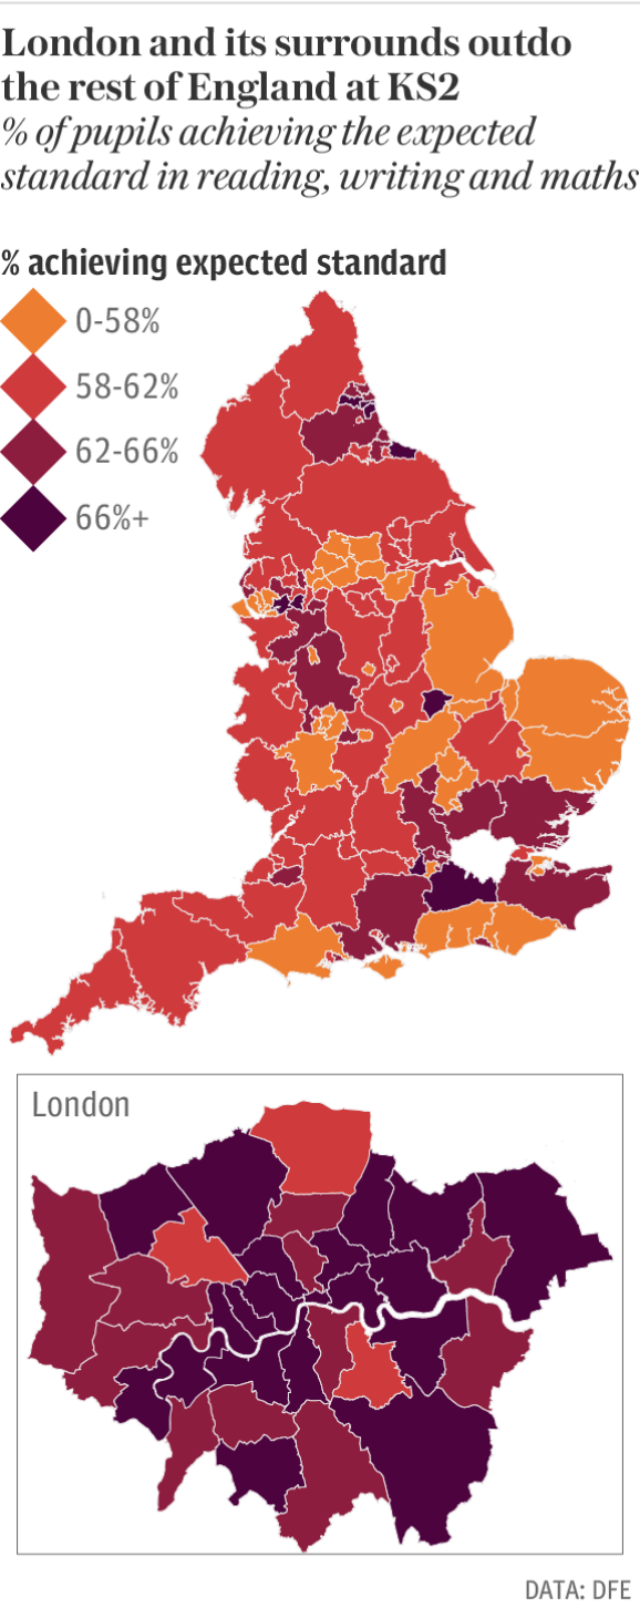 London outperforms the rest of the country at KS2